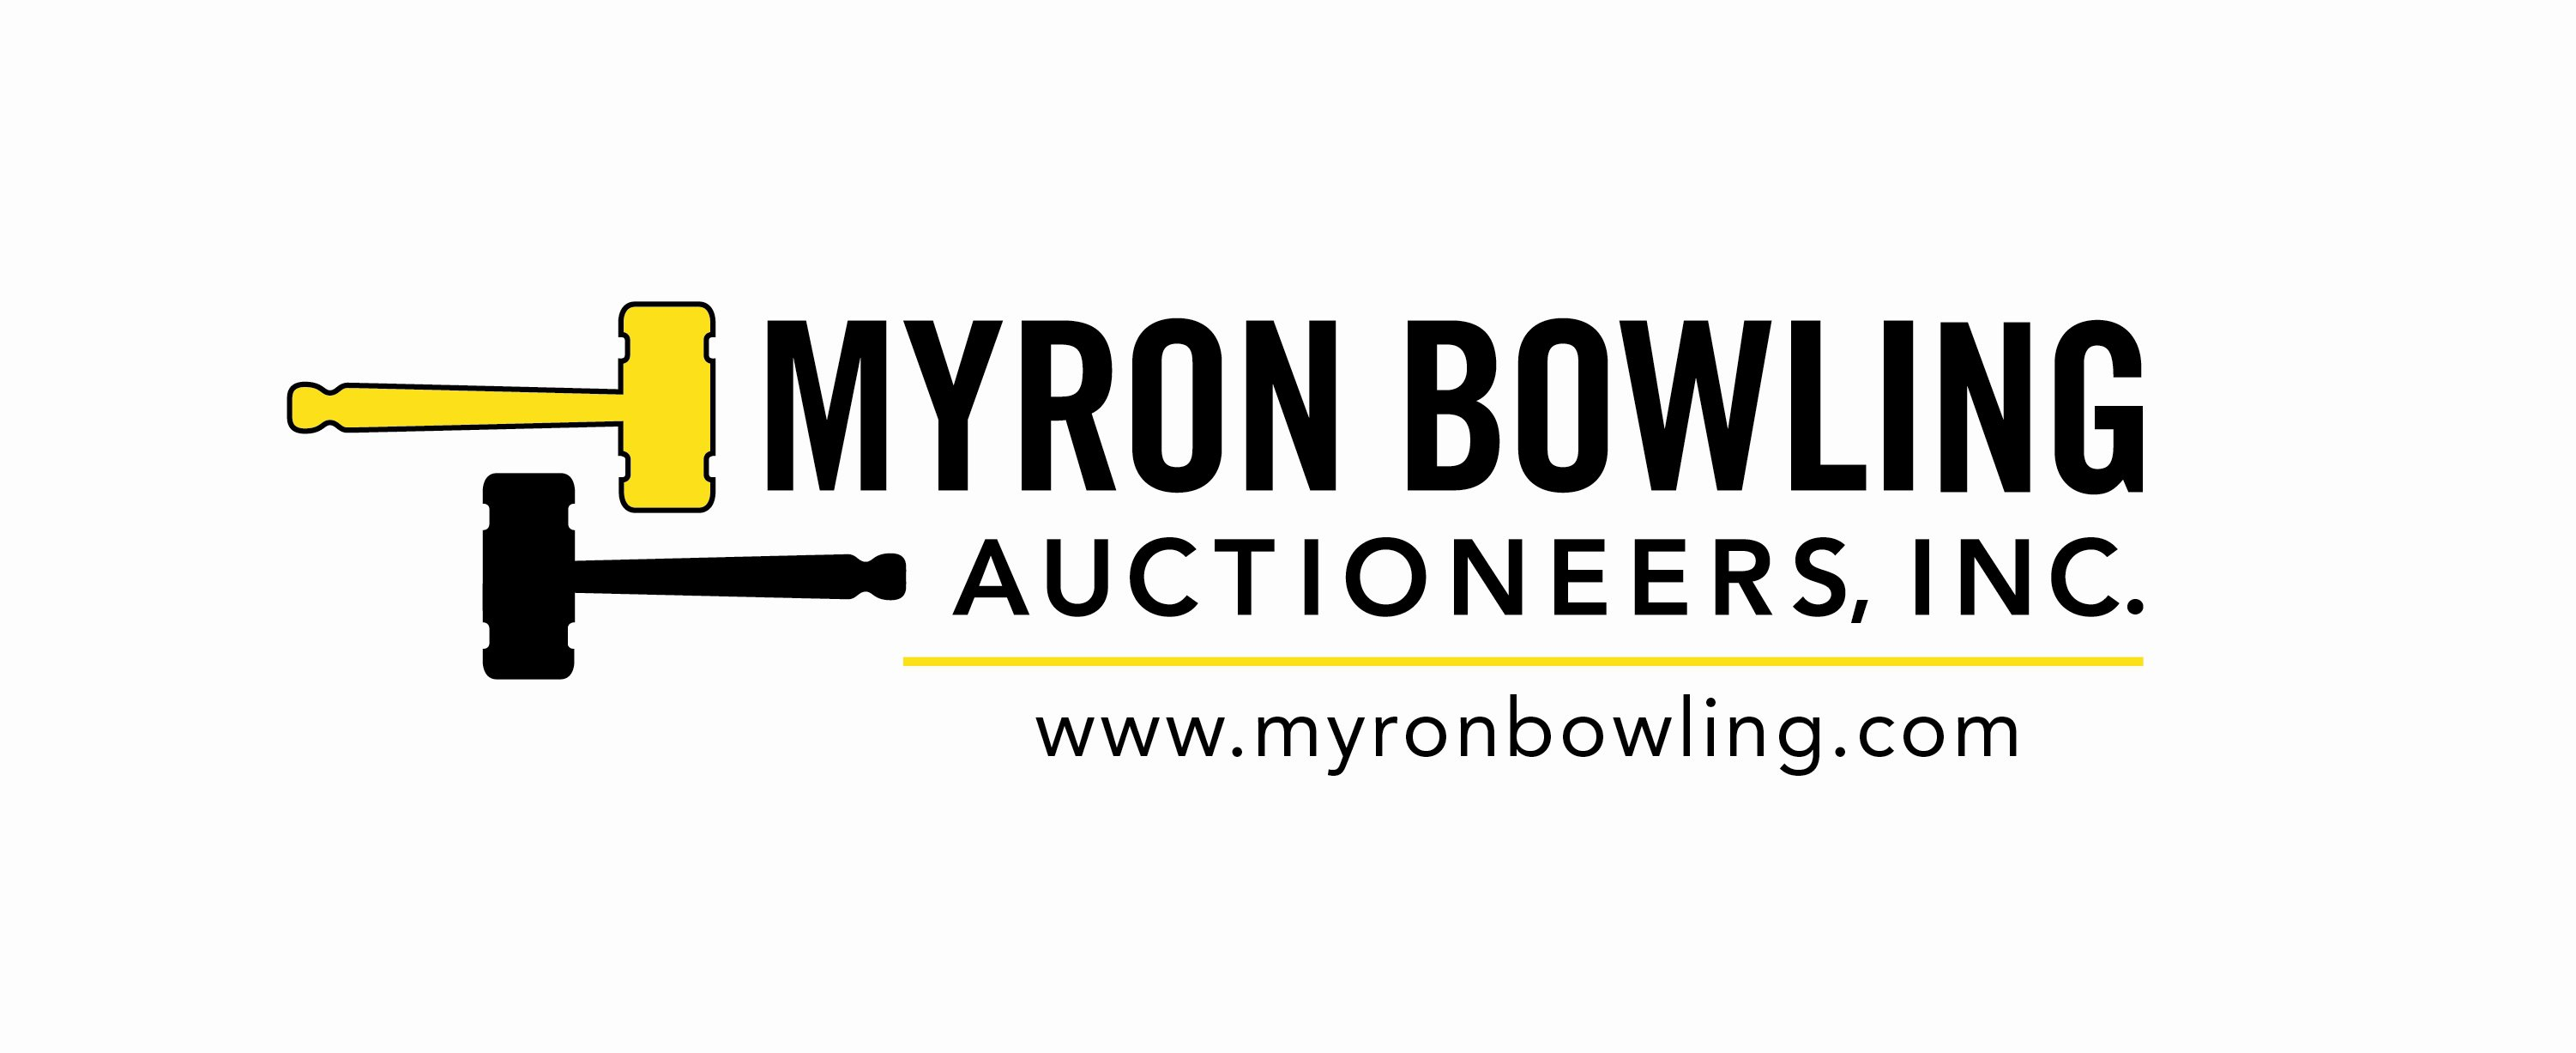 Myron Bowling Auctioneers, Inc.